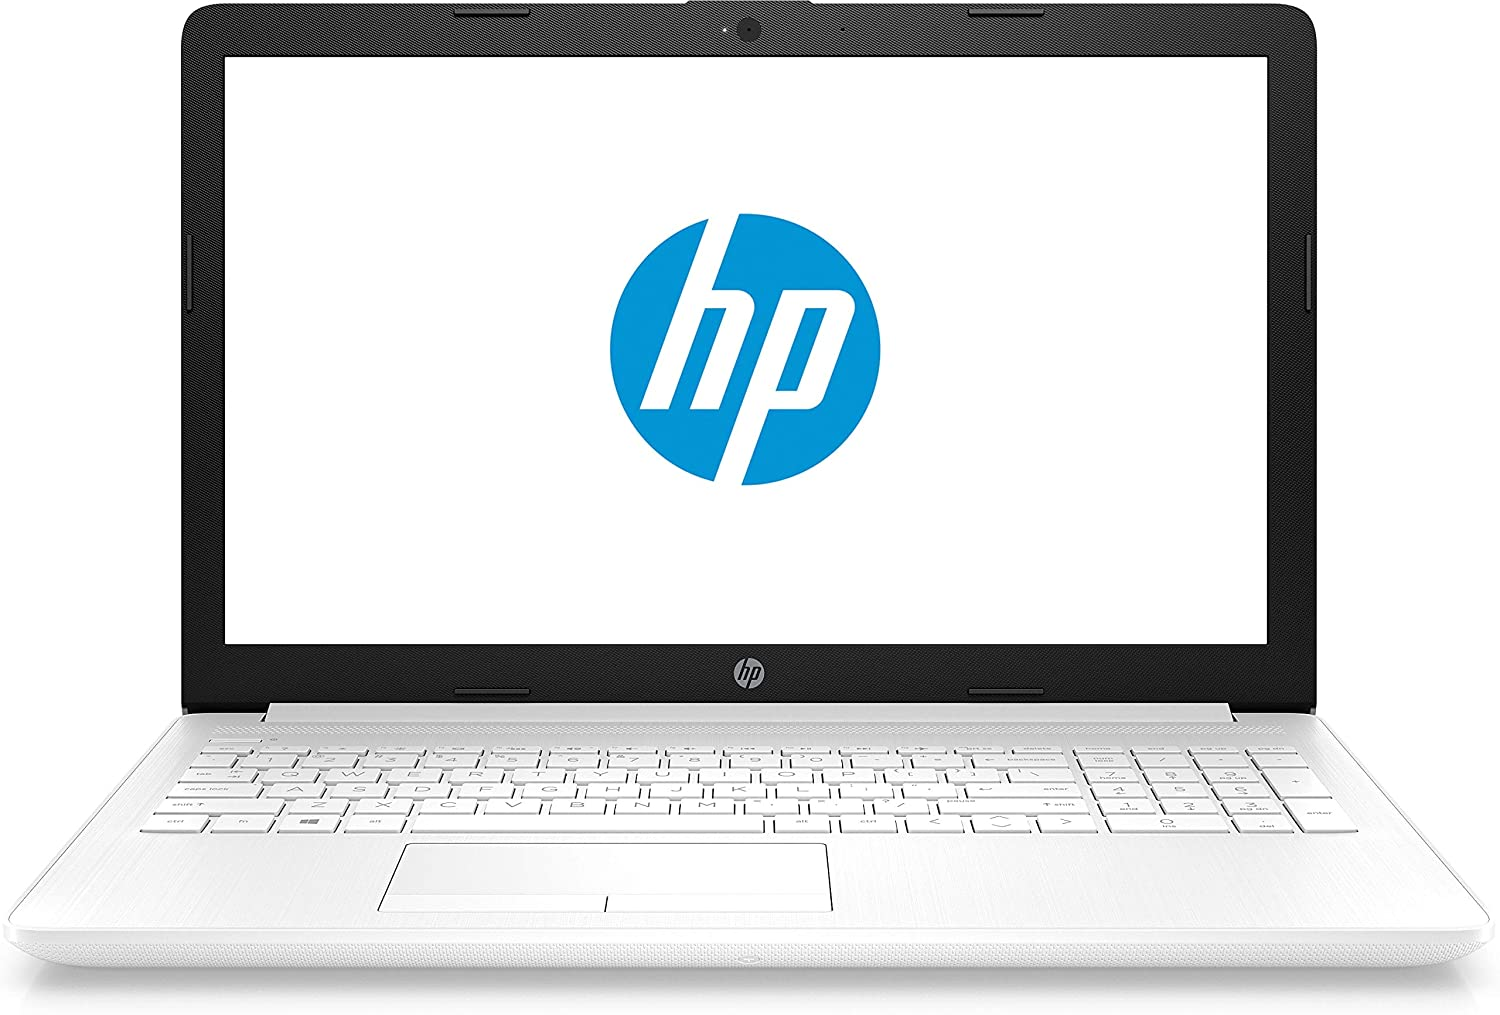 Portátil hp 15-da0759ns - i5-7200u 2.5ghz - 12gb - 256gb ssd - 15.6'/39.6cm HD - hdmi - BT - w10 Home - Blanco Nieve.